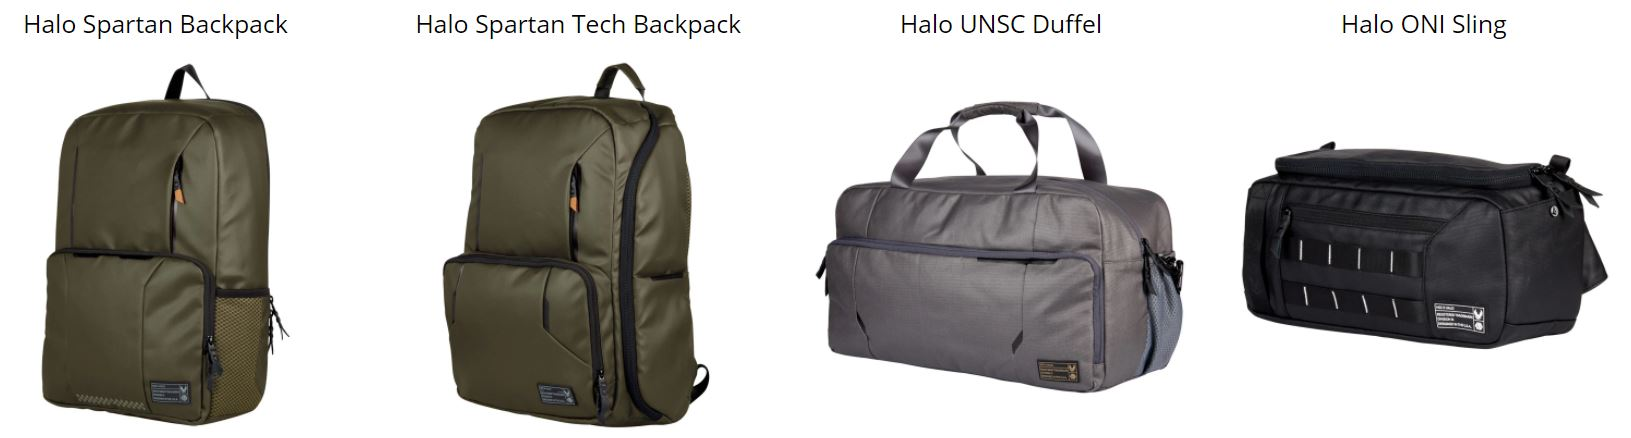 halo collection.JPG